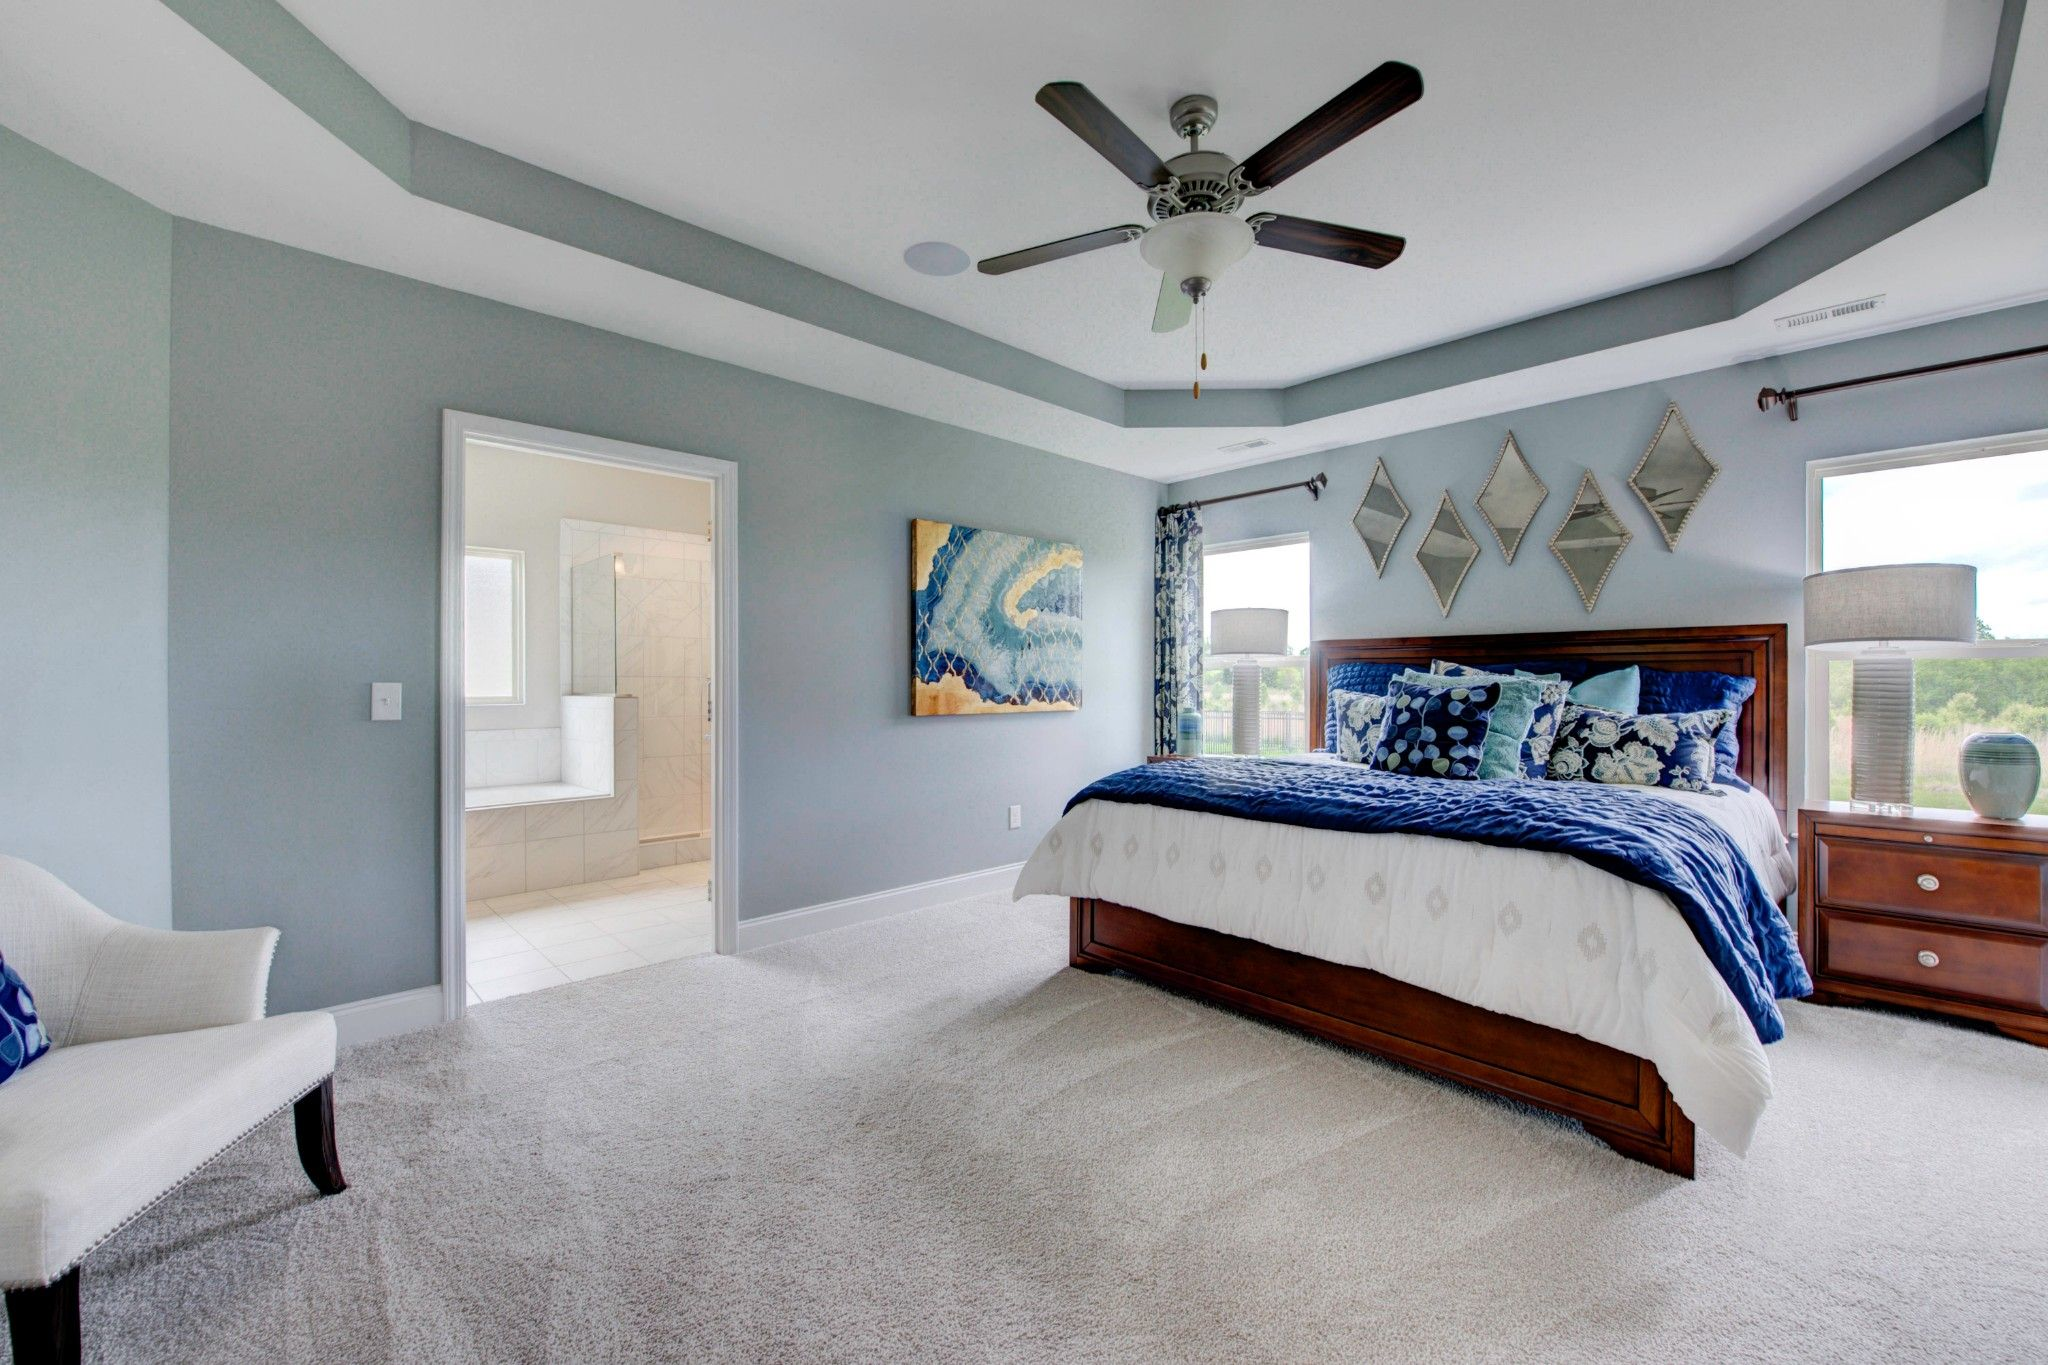 Bedroom featured in The Eliot By Goodall Homes in Knoxville, TN